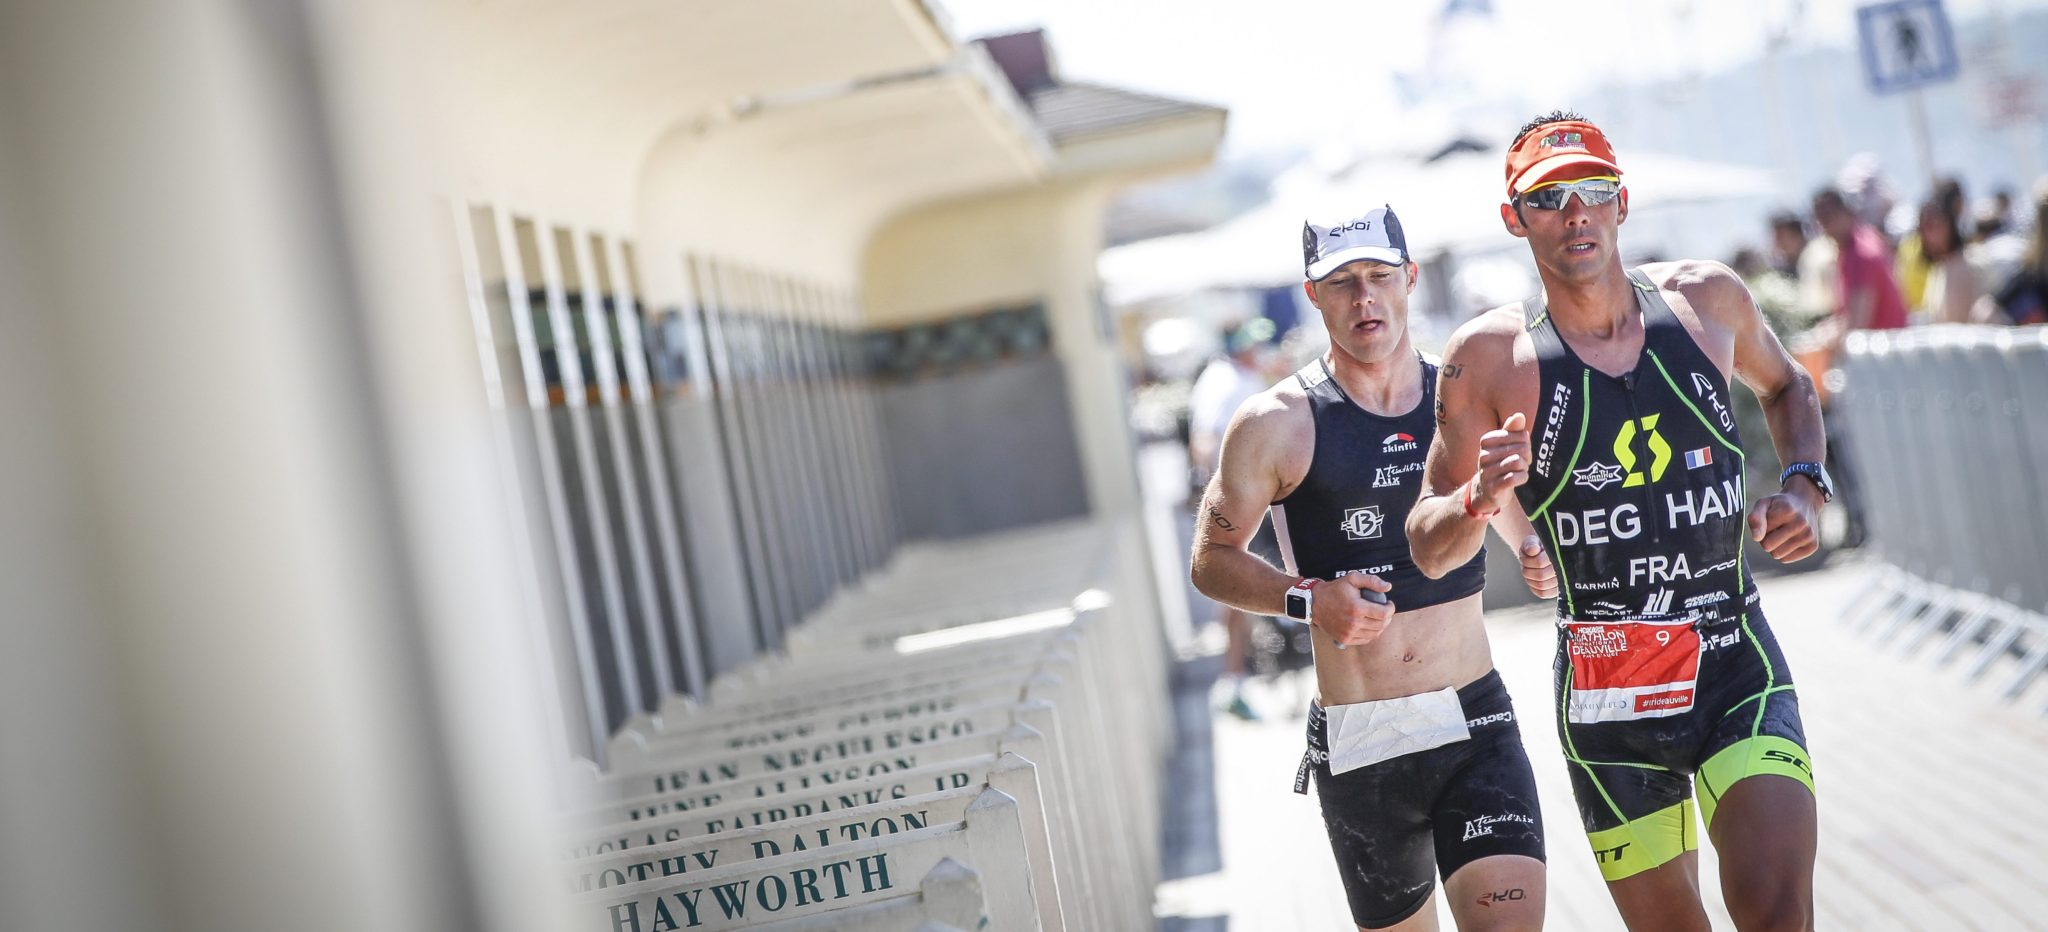 Take up the new challenge of the Deauville Triathlon , on Sunday 23rd June 2019 at 8:30am.